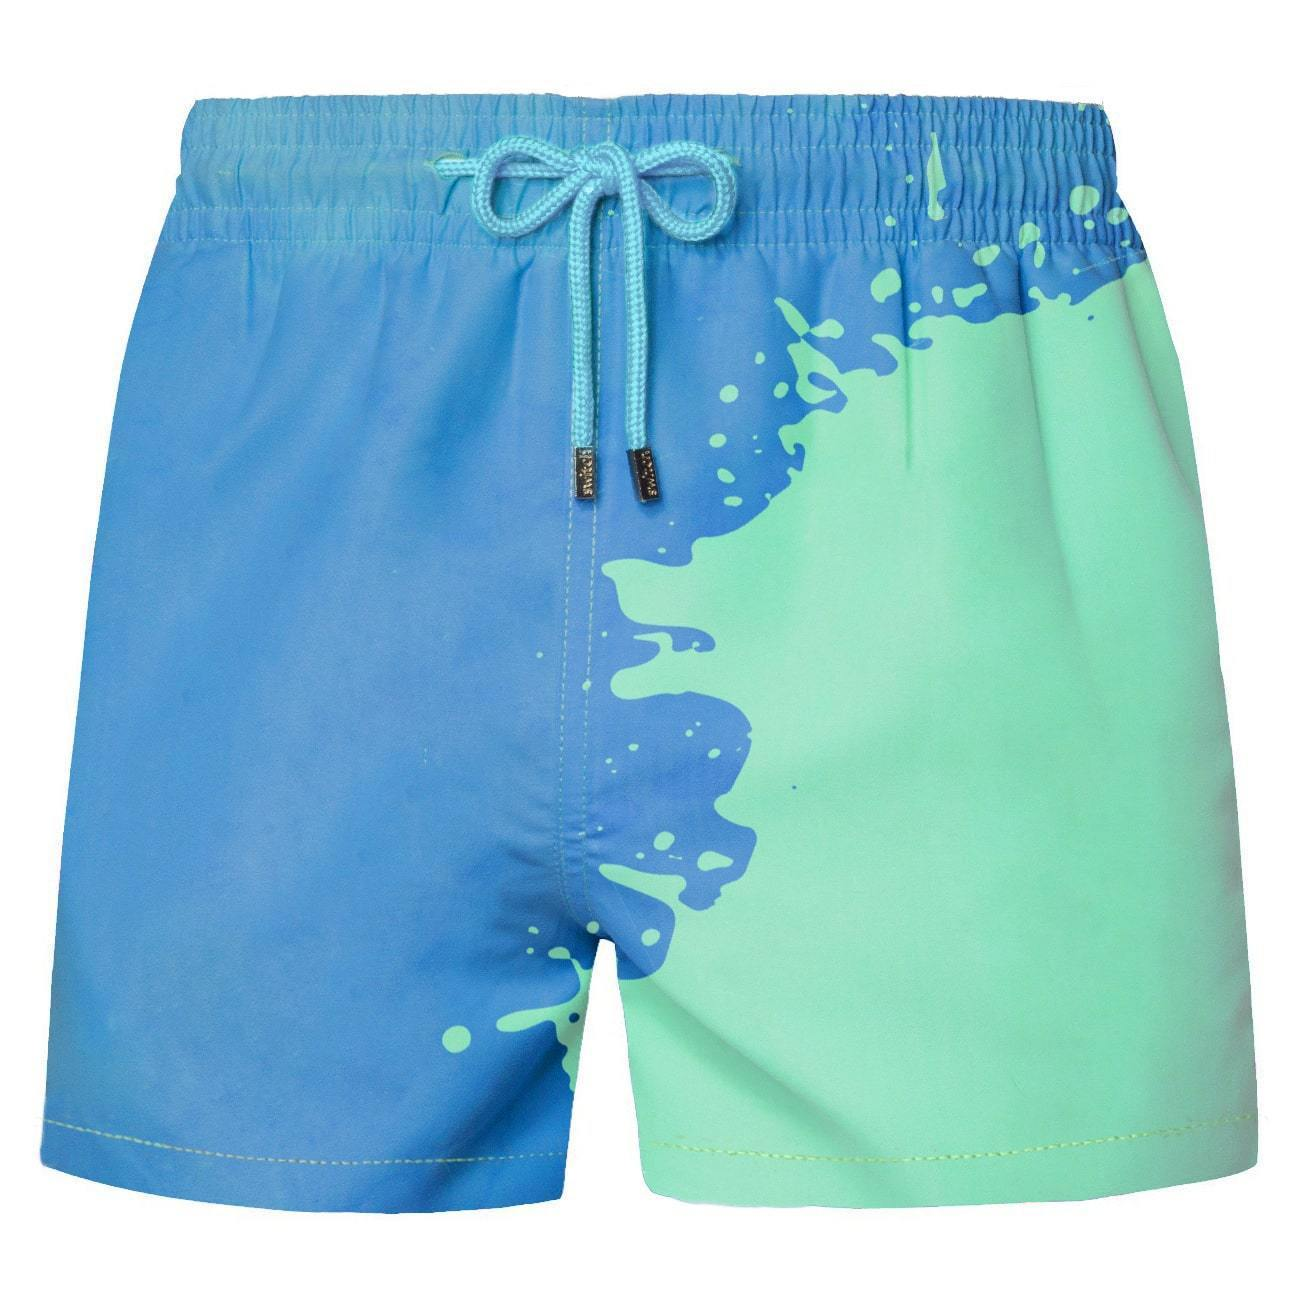 $25.99 Today Only The Top 100 Customers 🔥 HYPER SWITCHS COLOR CHANGING SWIM TRUNKS